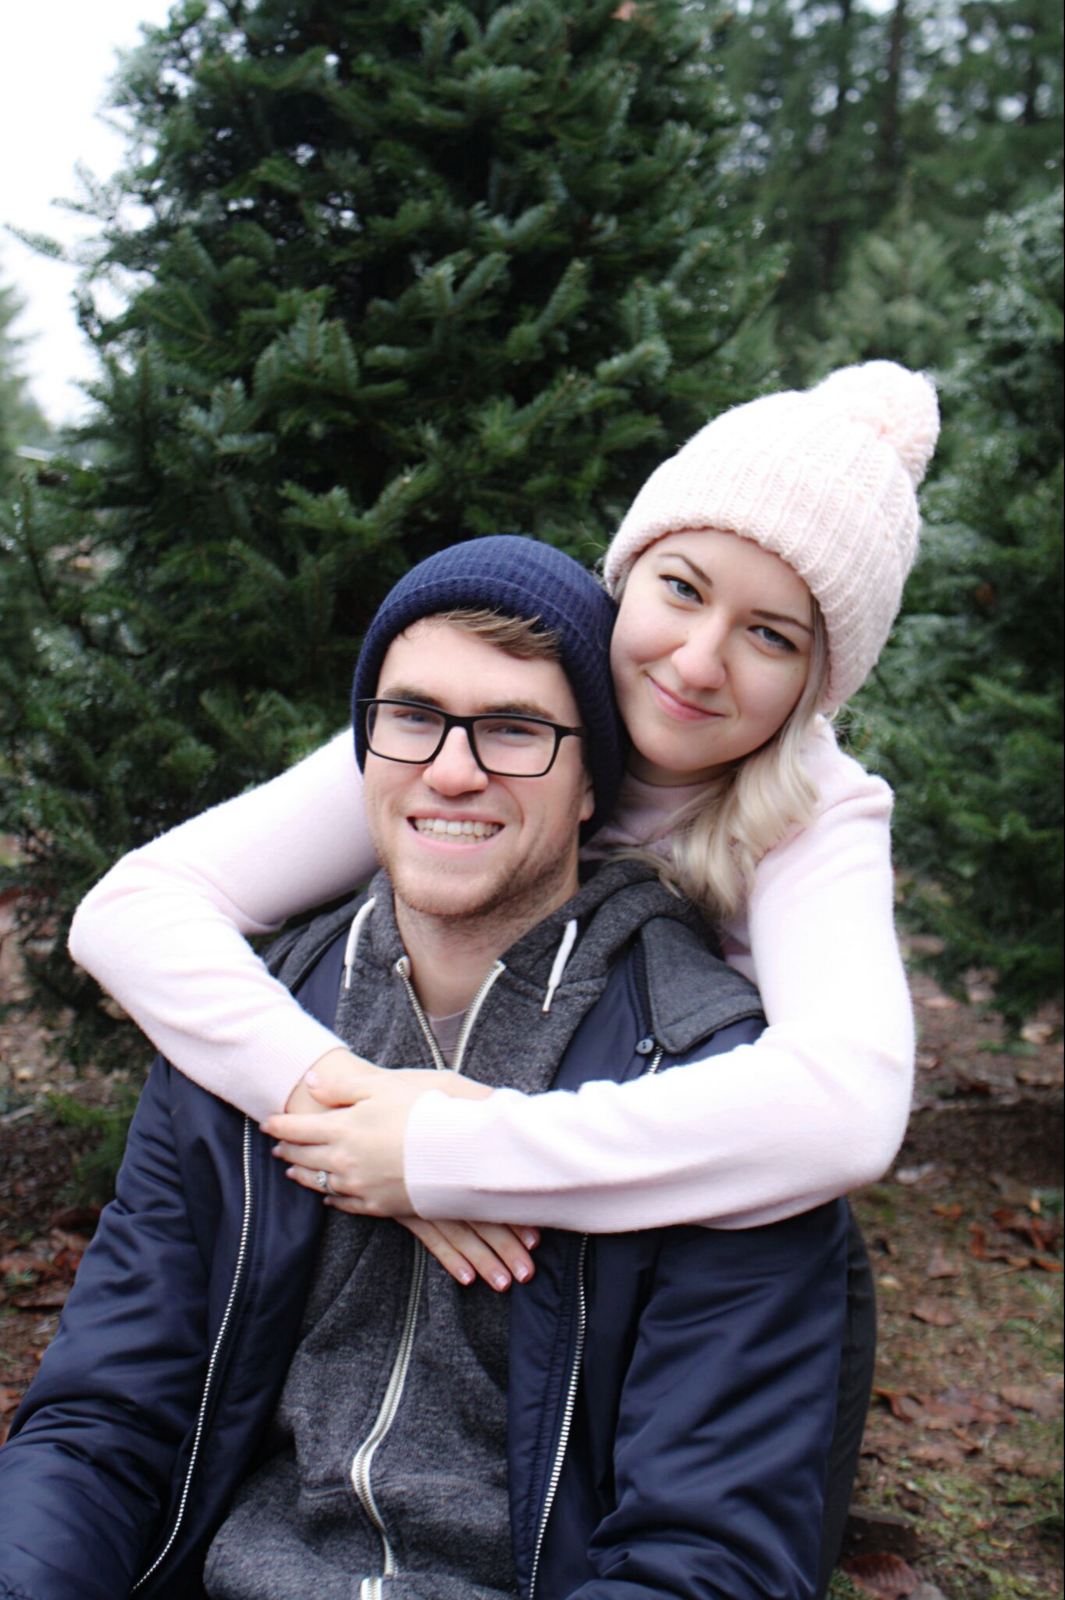 Newlywed Wife: 6 Months of Marriage (What Married Life Is Really Like)